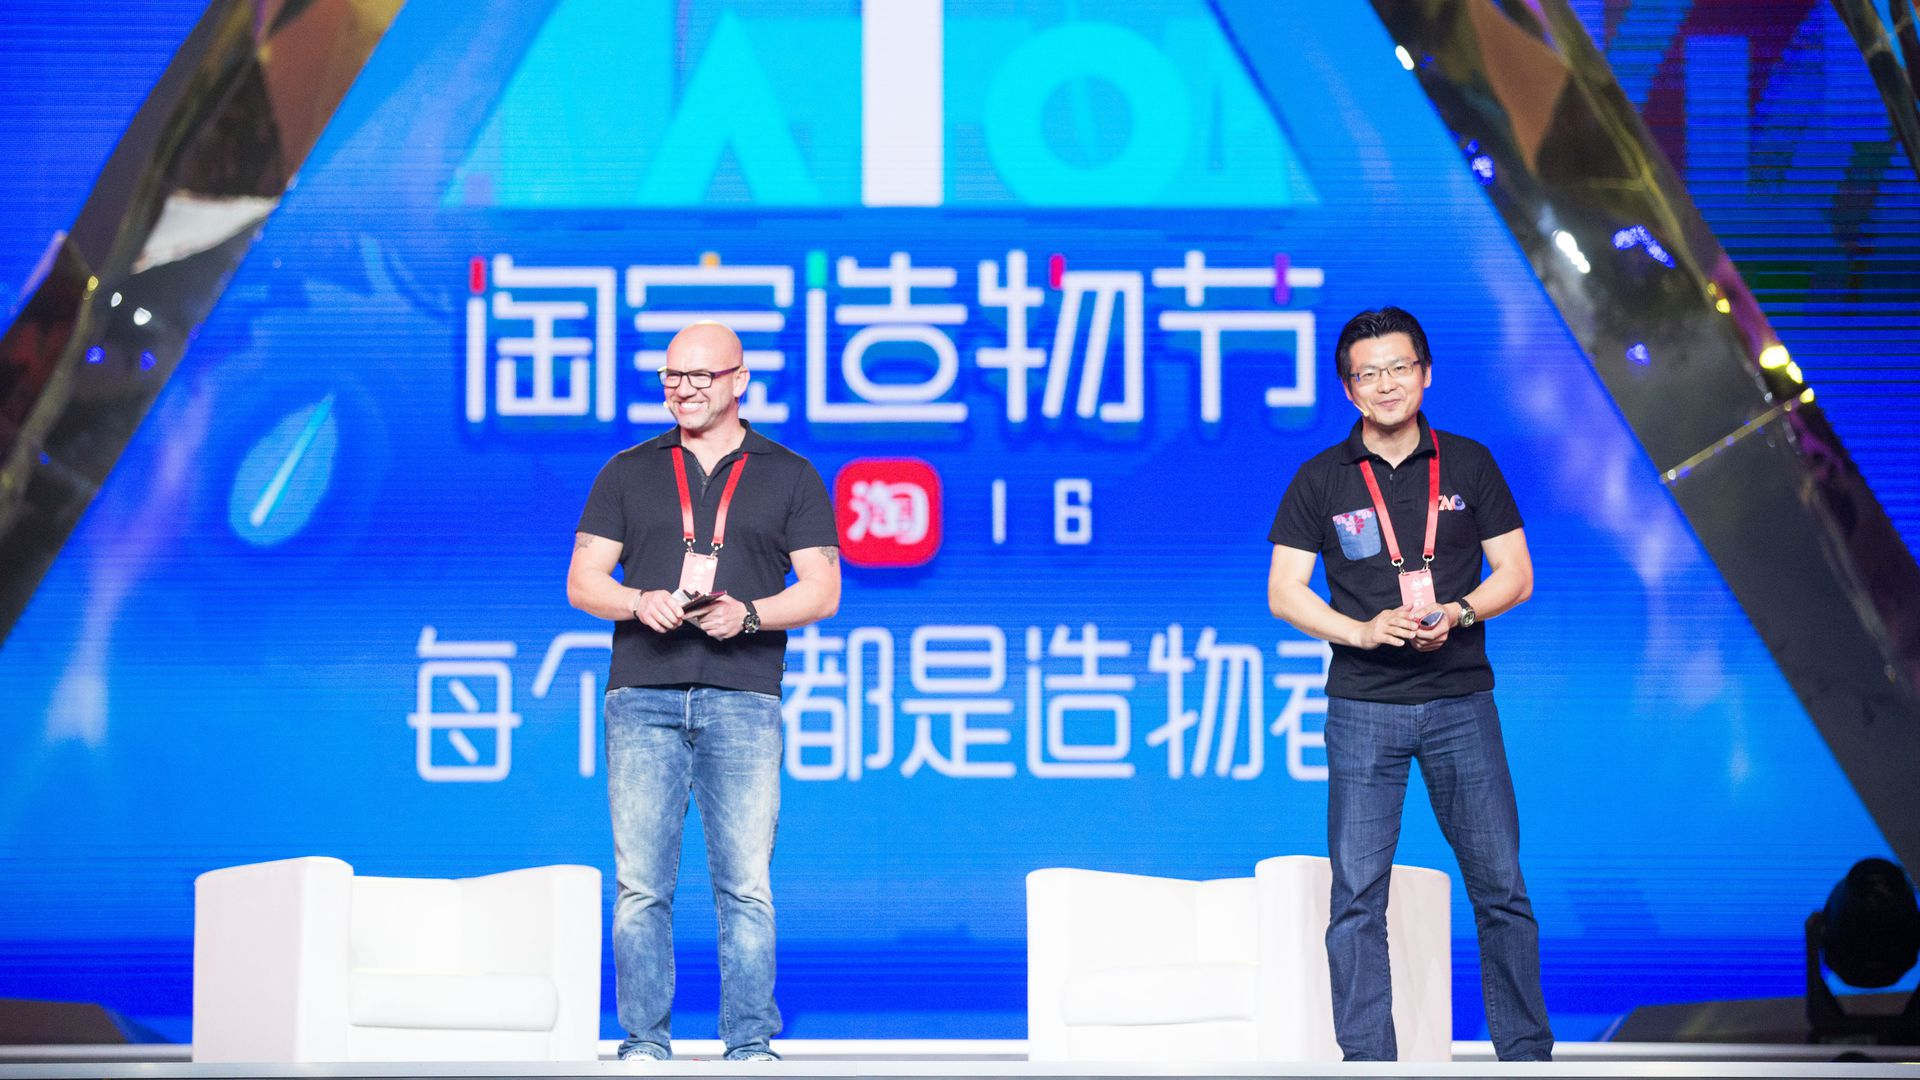 Two men in back T-shirts and jeans stand on a stage with two white chairs.